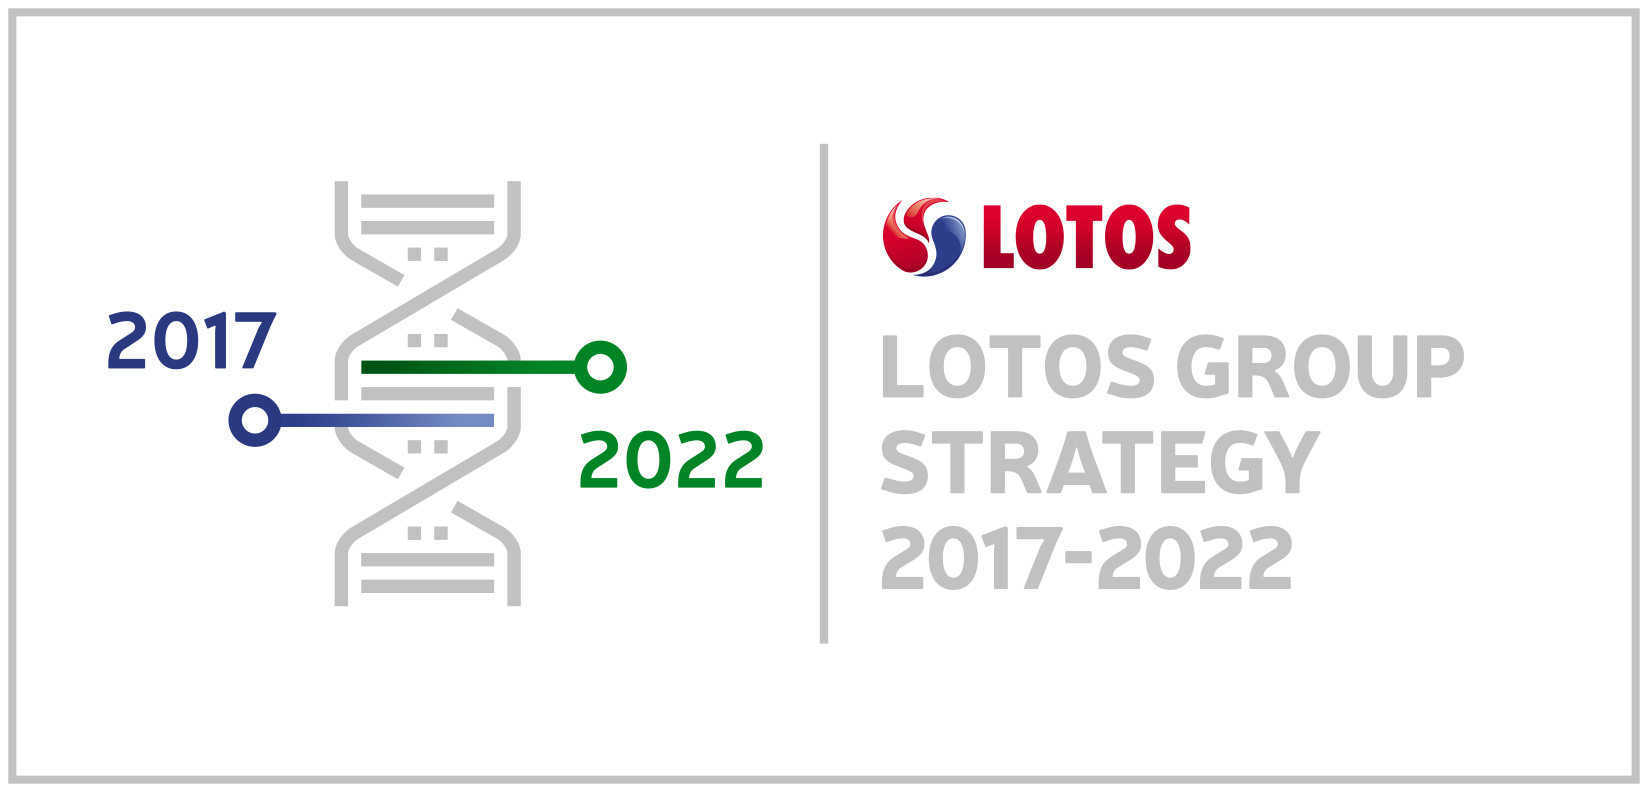 Strategy 2017-2022